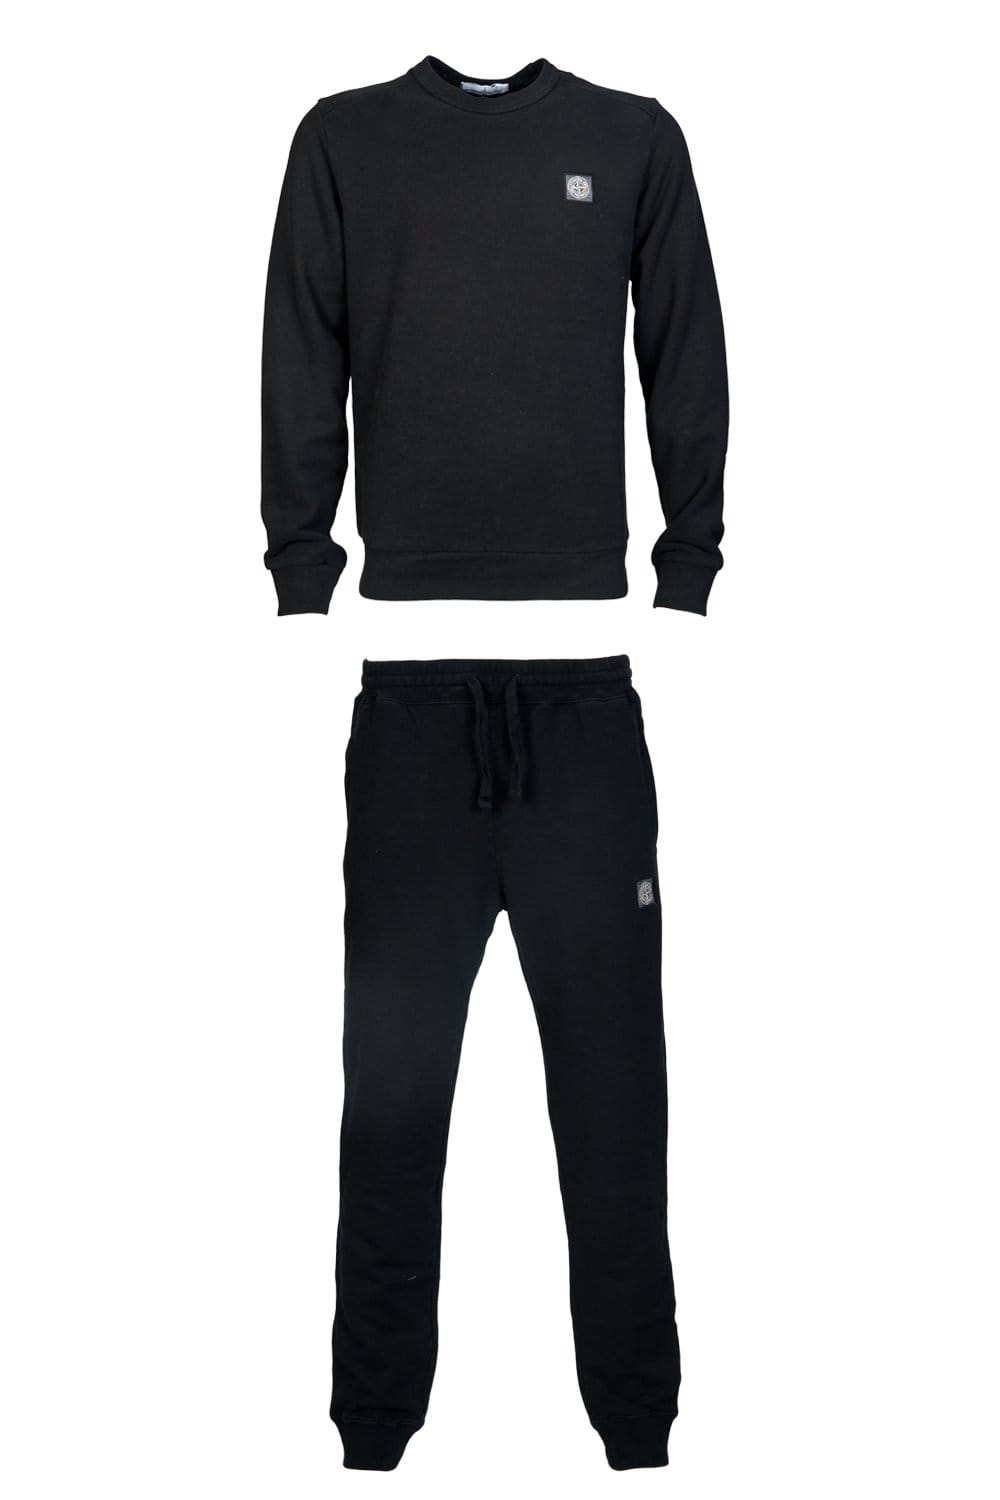 Stone Island Casual Tracksuit In Black Grey And Royal Blue 631562350 631563450 Clothing From